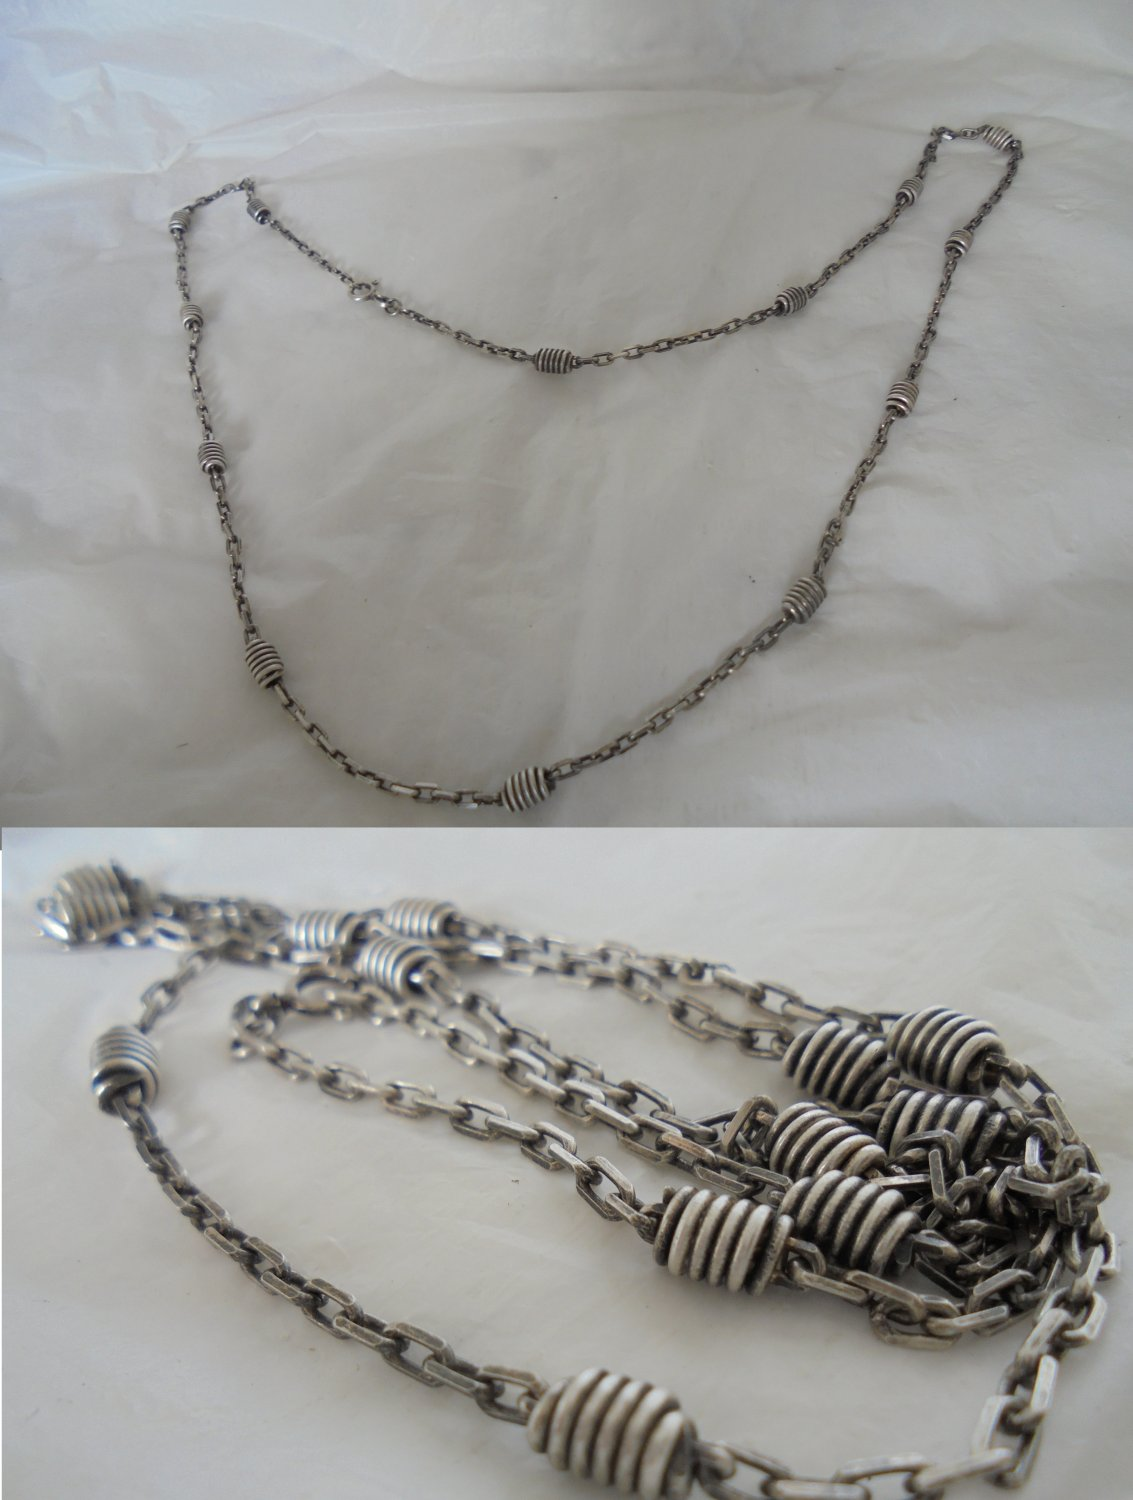 NECKLACE CHAIN in STERLING silver 925 Original from Arezzo Italy